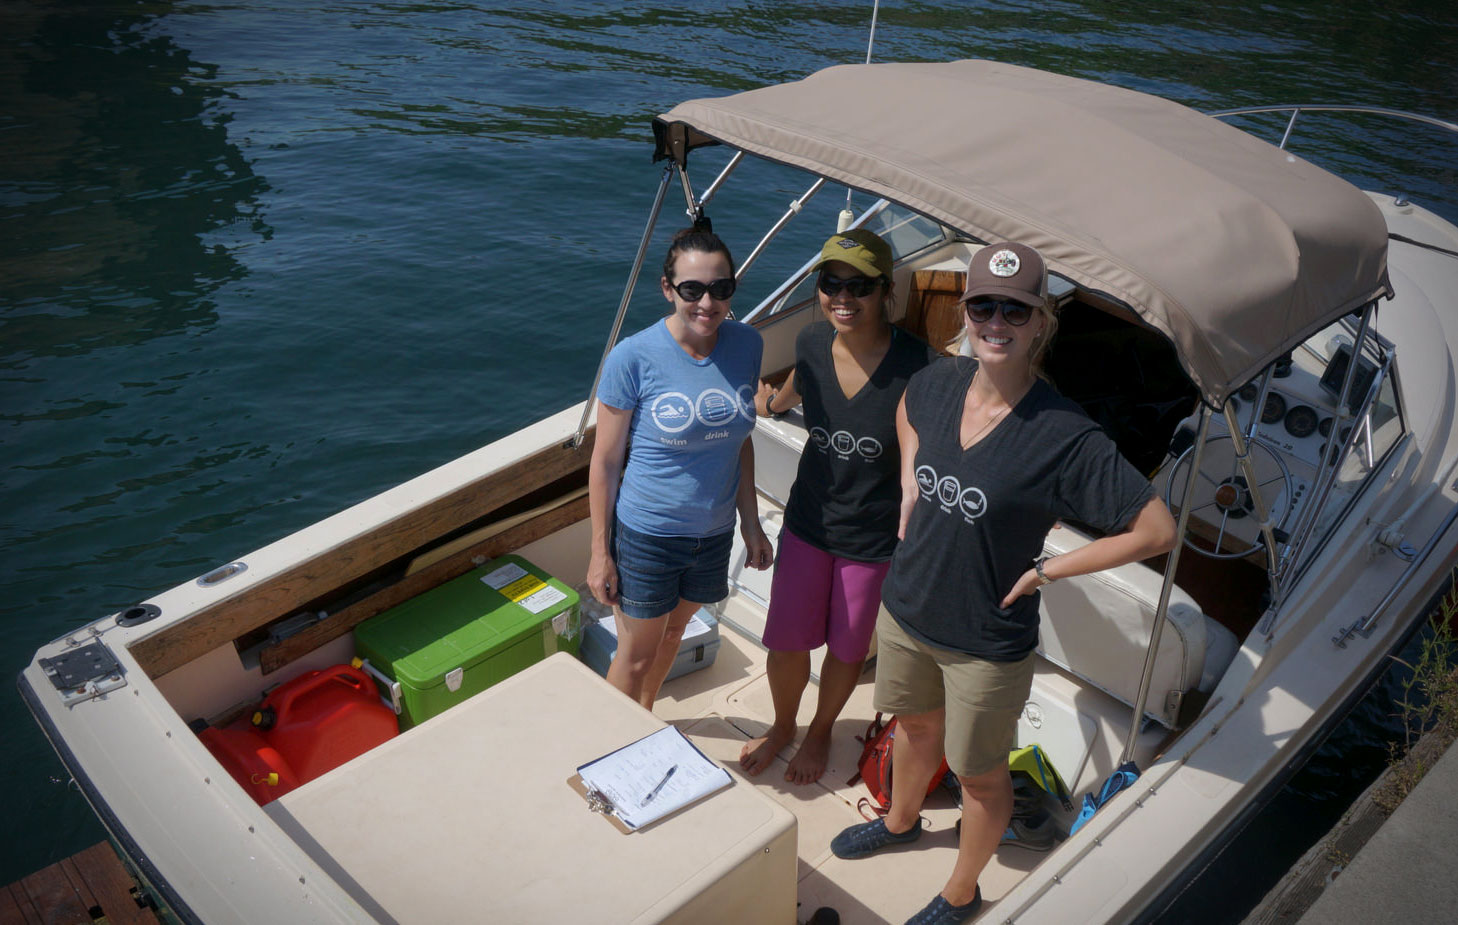 Waterkeeper's team wearing their Swim Drink Fish circles with pride while collecting water samples from Toronto's harbour this past summer. (Photo by Li Black)